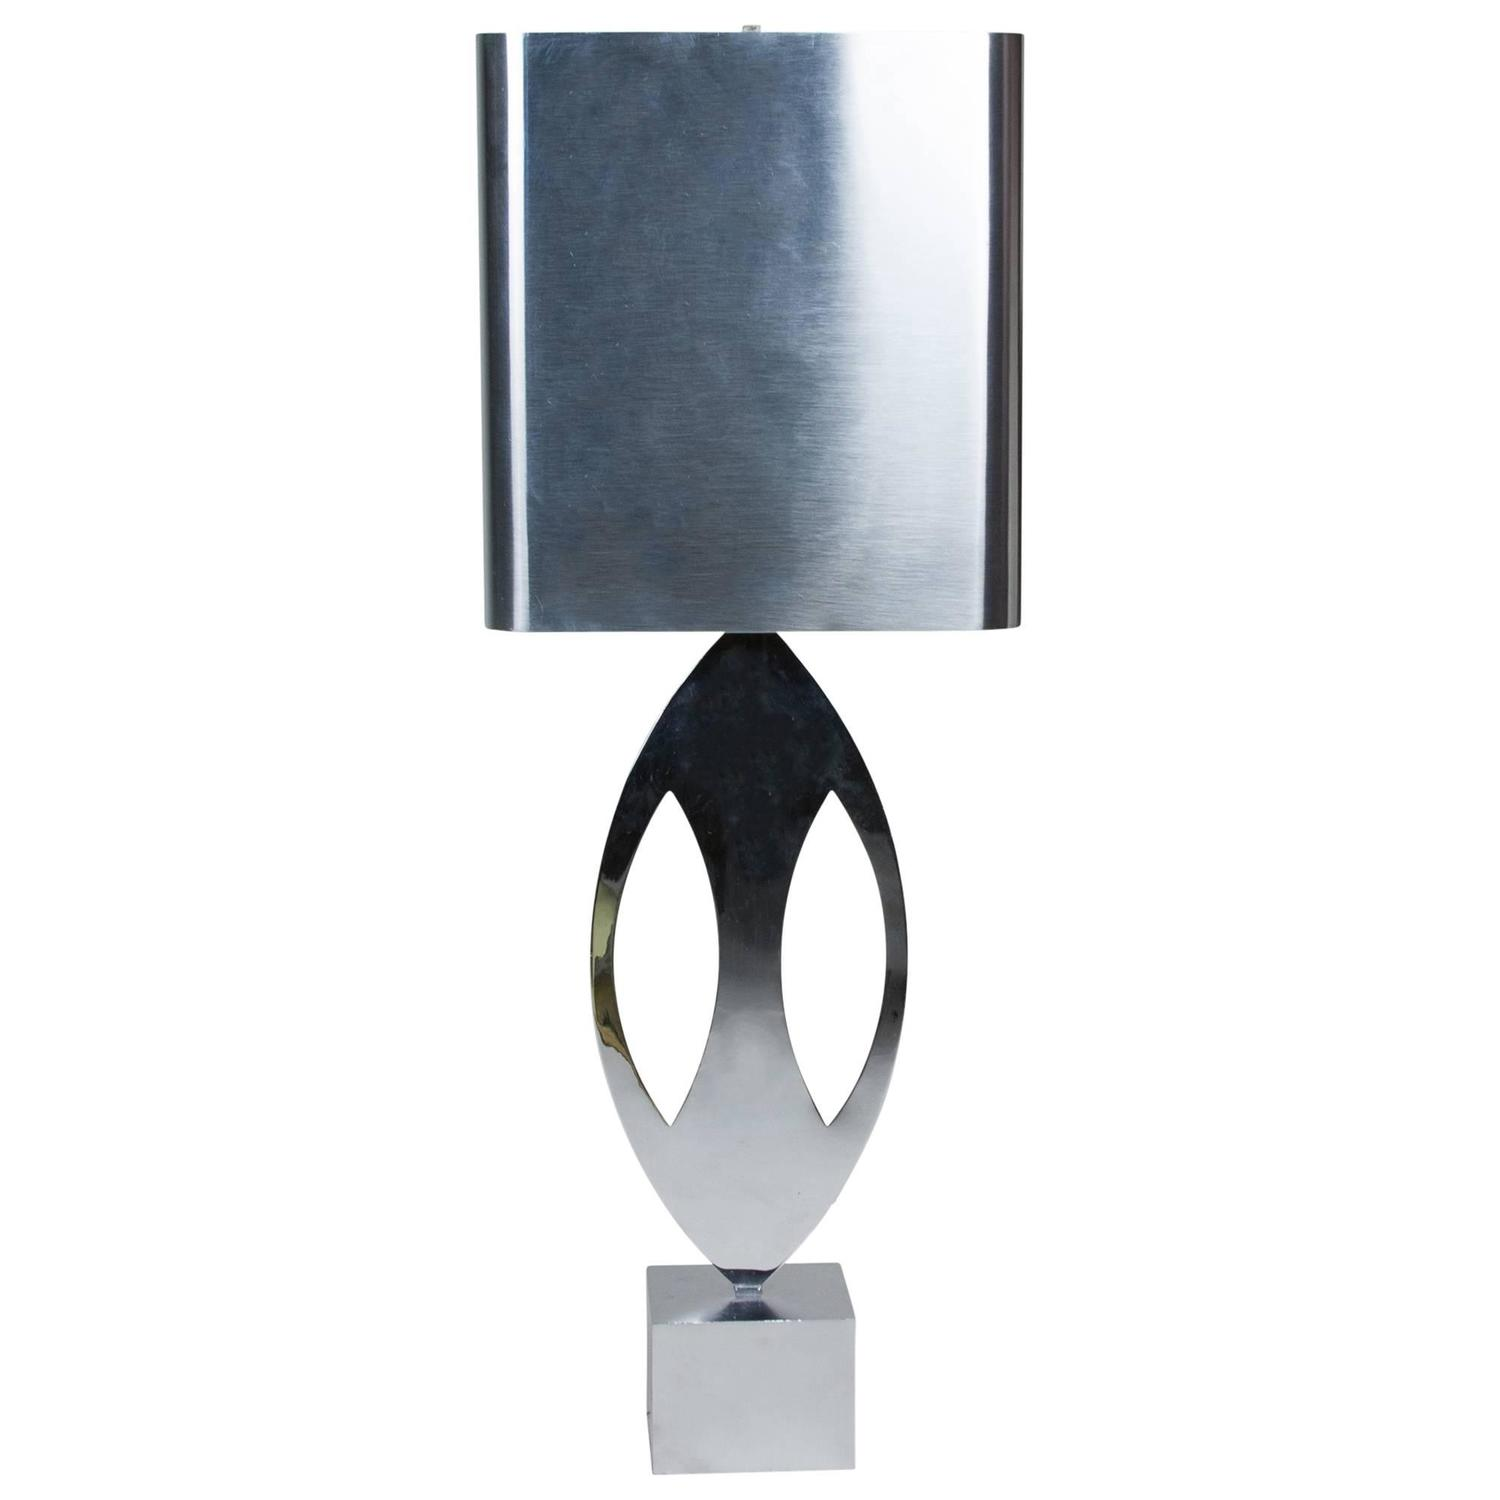 charles stainless steel table lamp for sale at 1stdibs. Black Bedroom Furniture Sets. Home Design Ideas